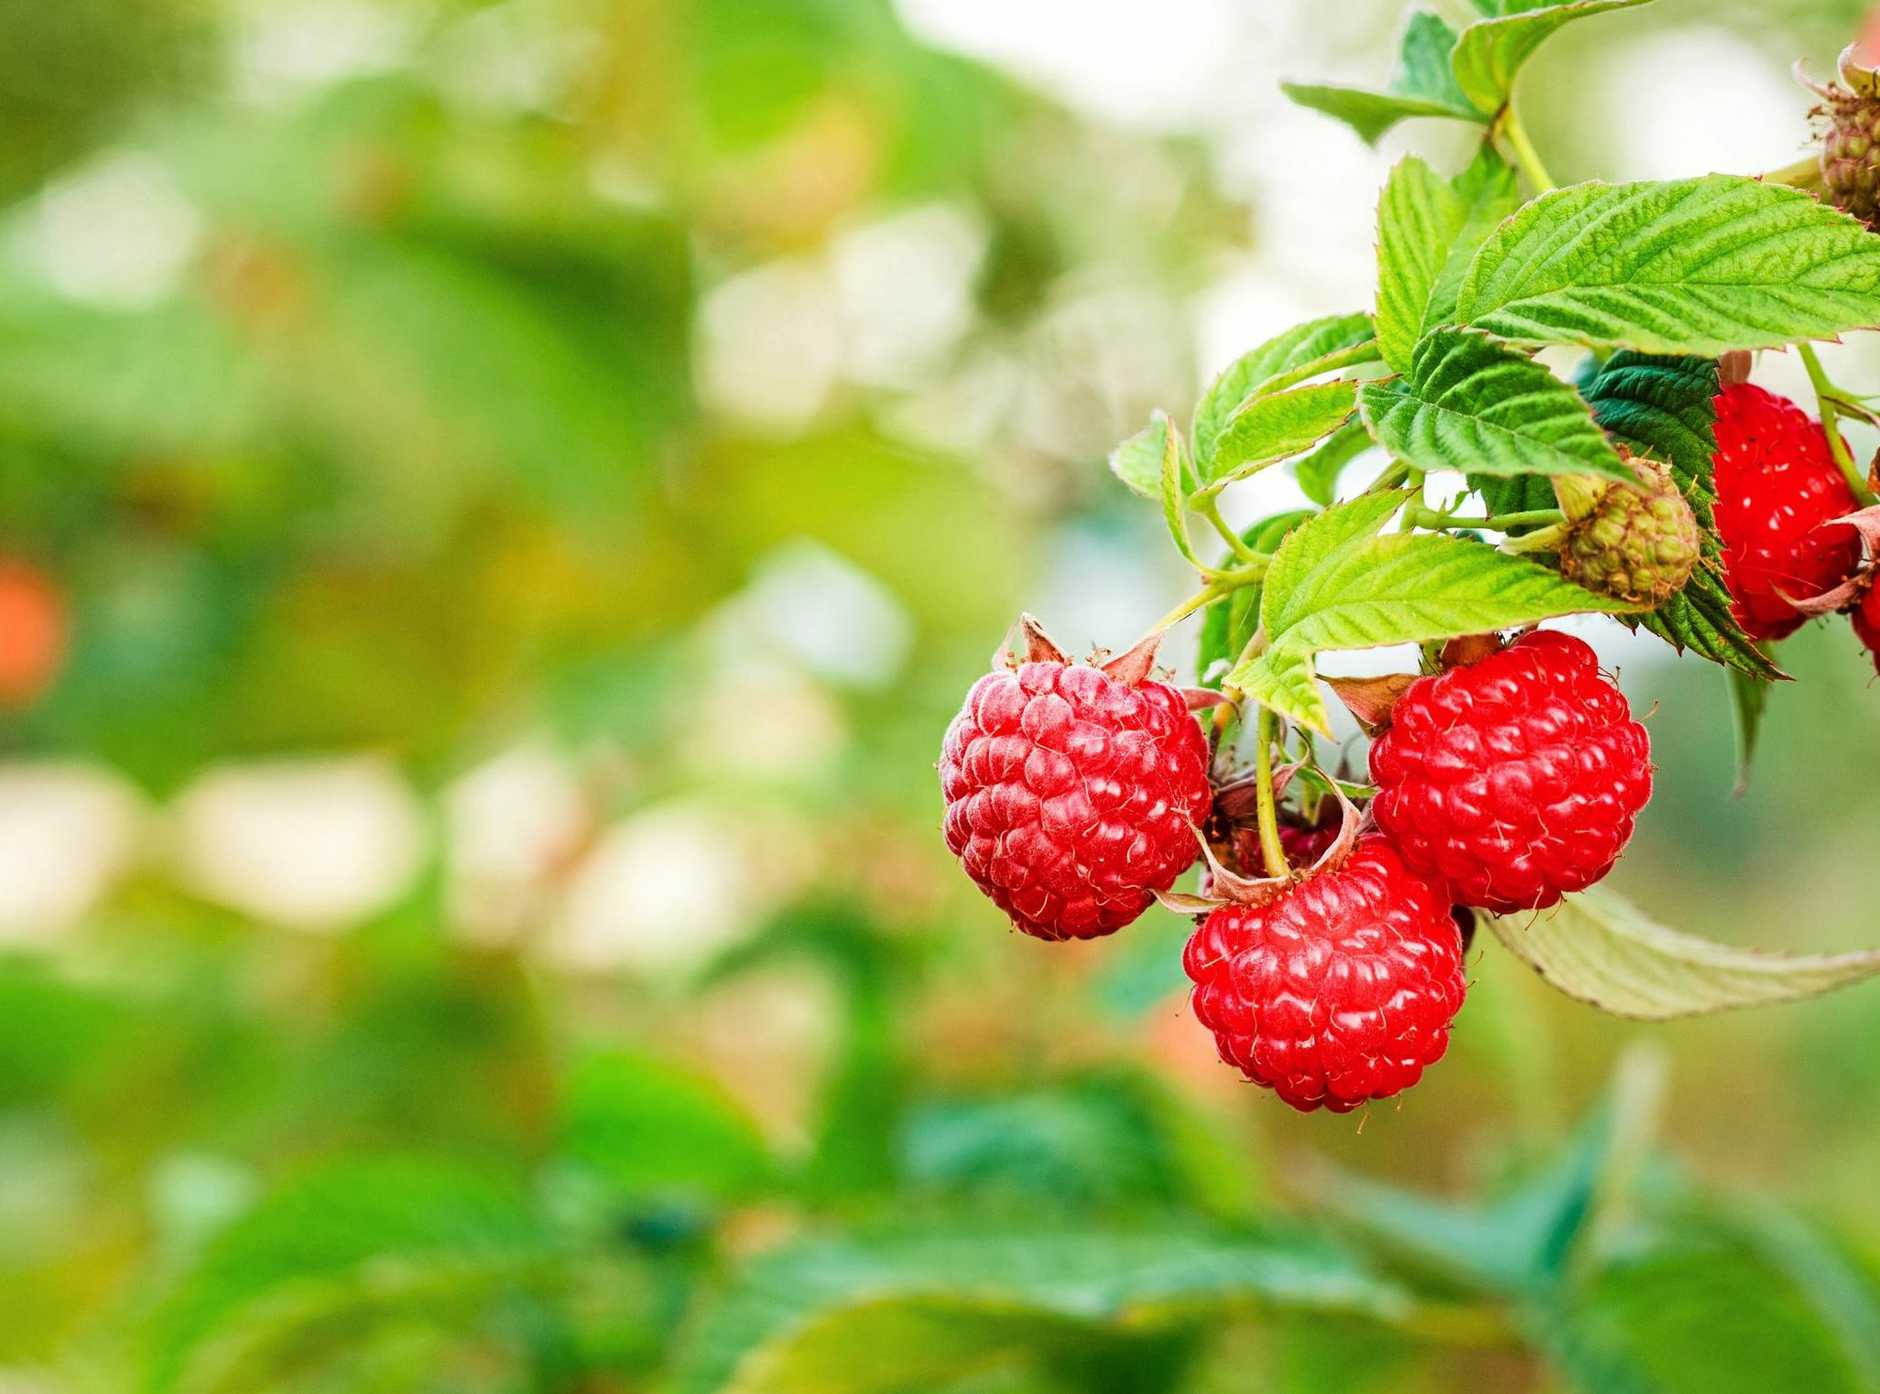 BERRY GOOD: Raspberries grow in a cool or temperate climate.